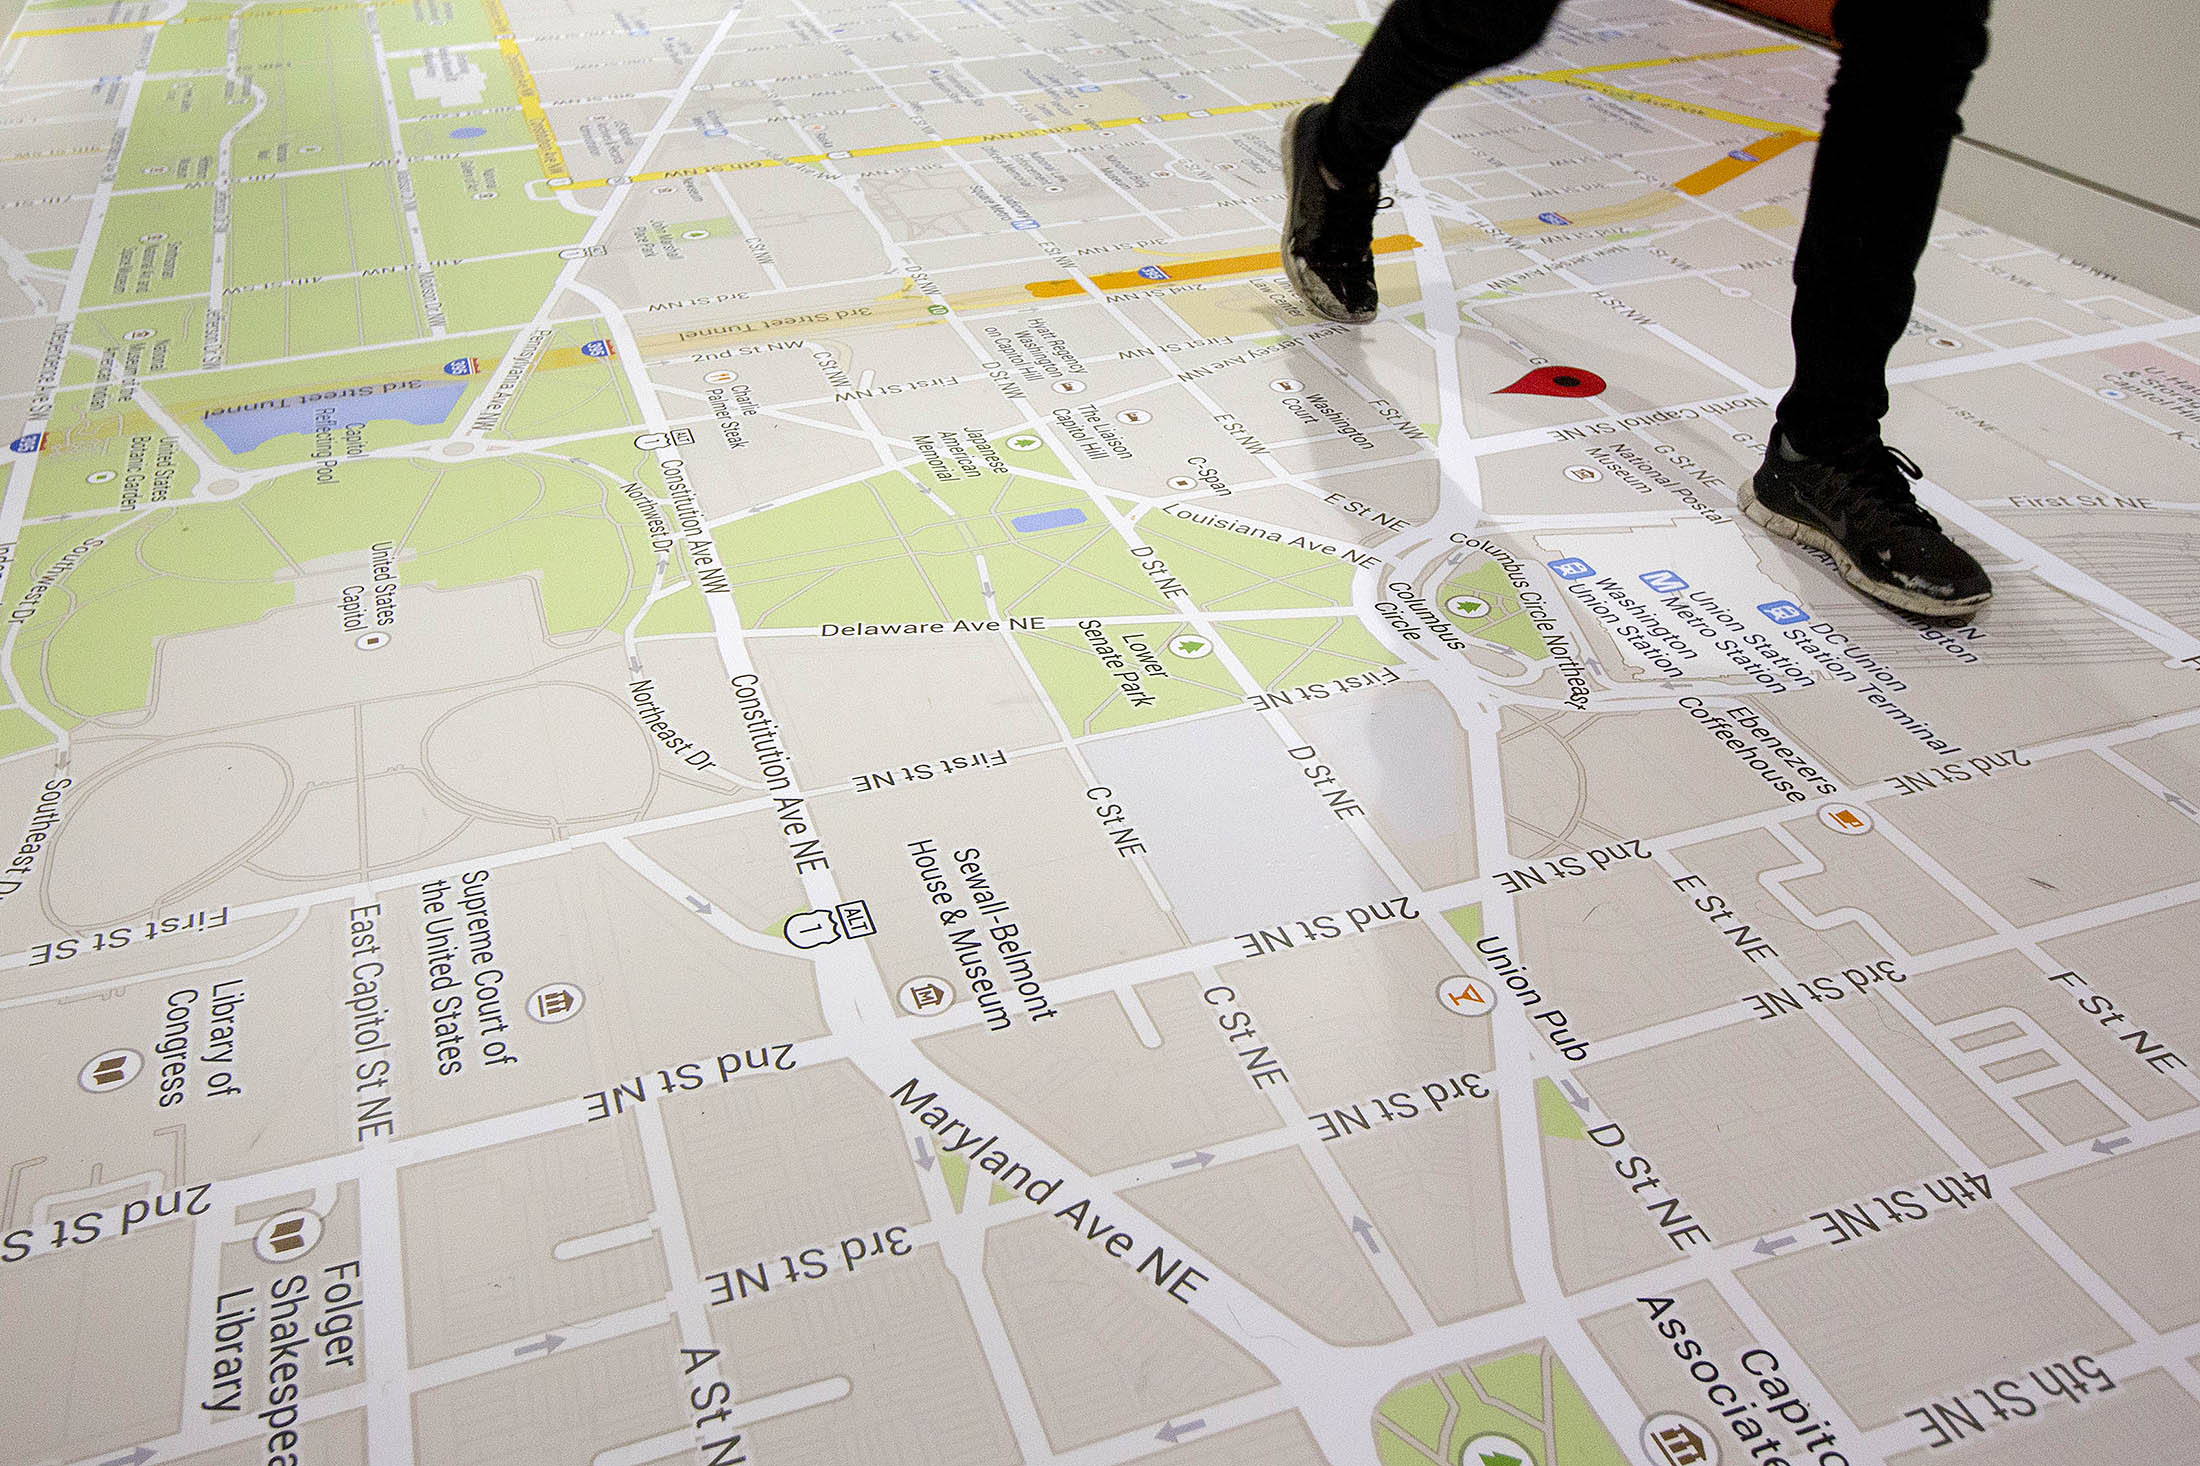 Google Plans to Map the Interior World in 3D Bloomberg